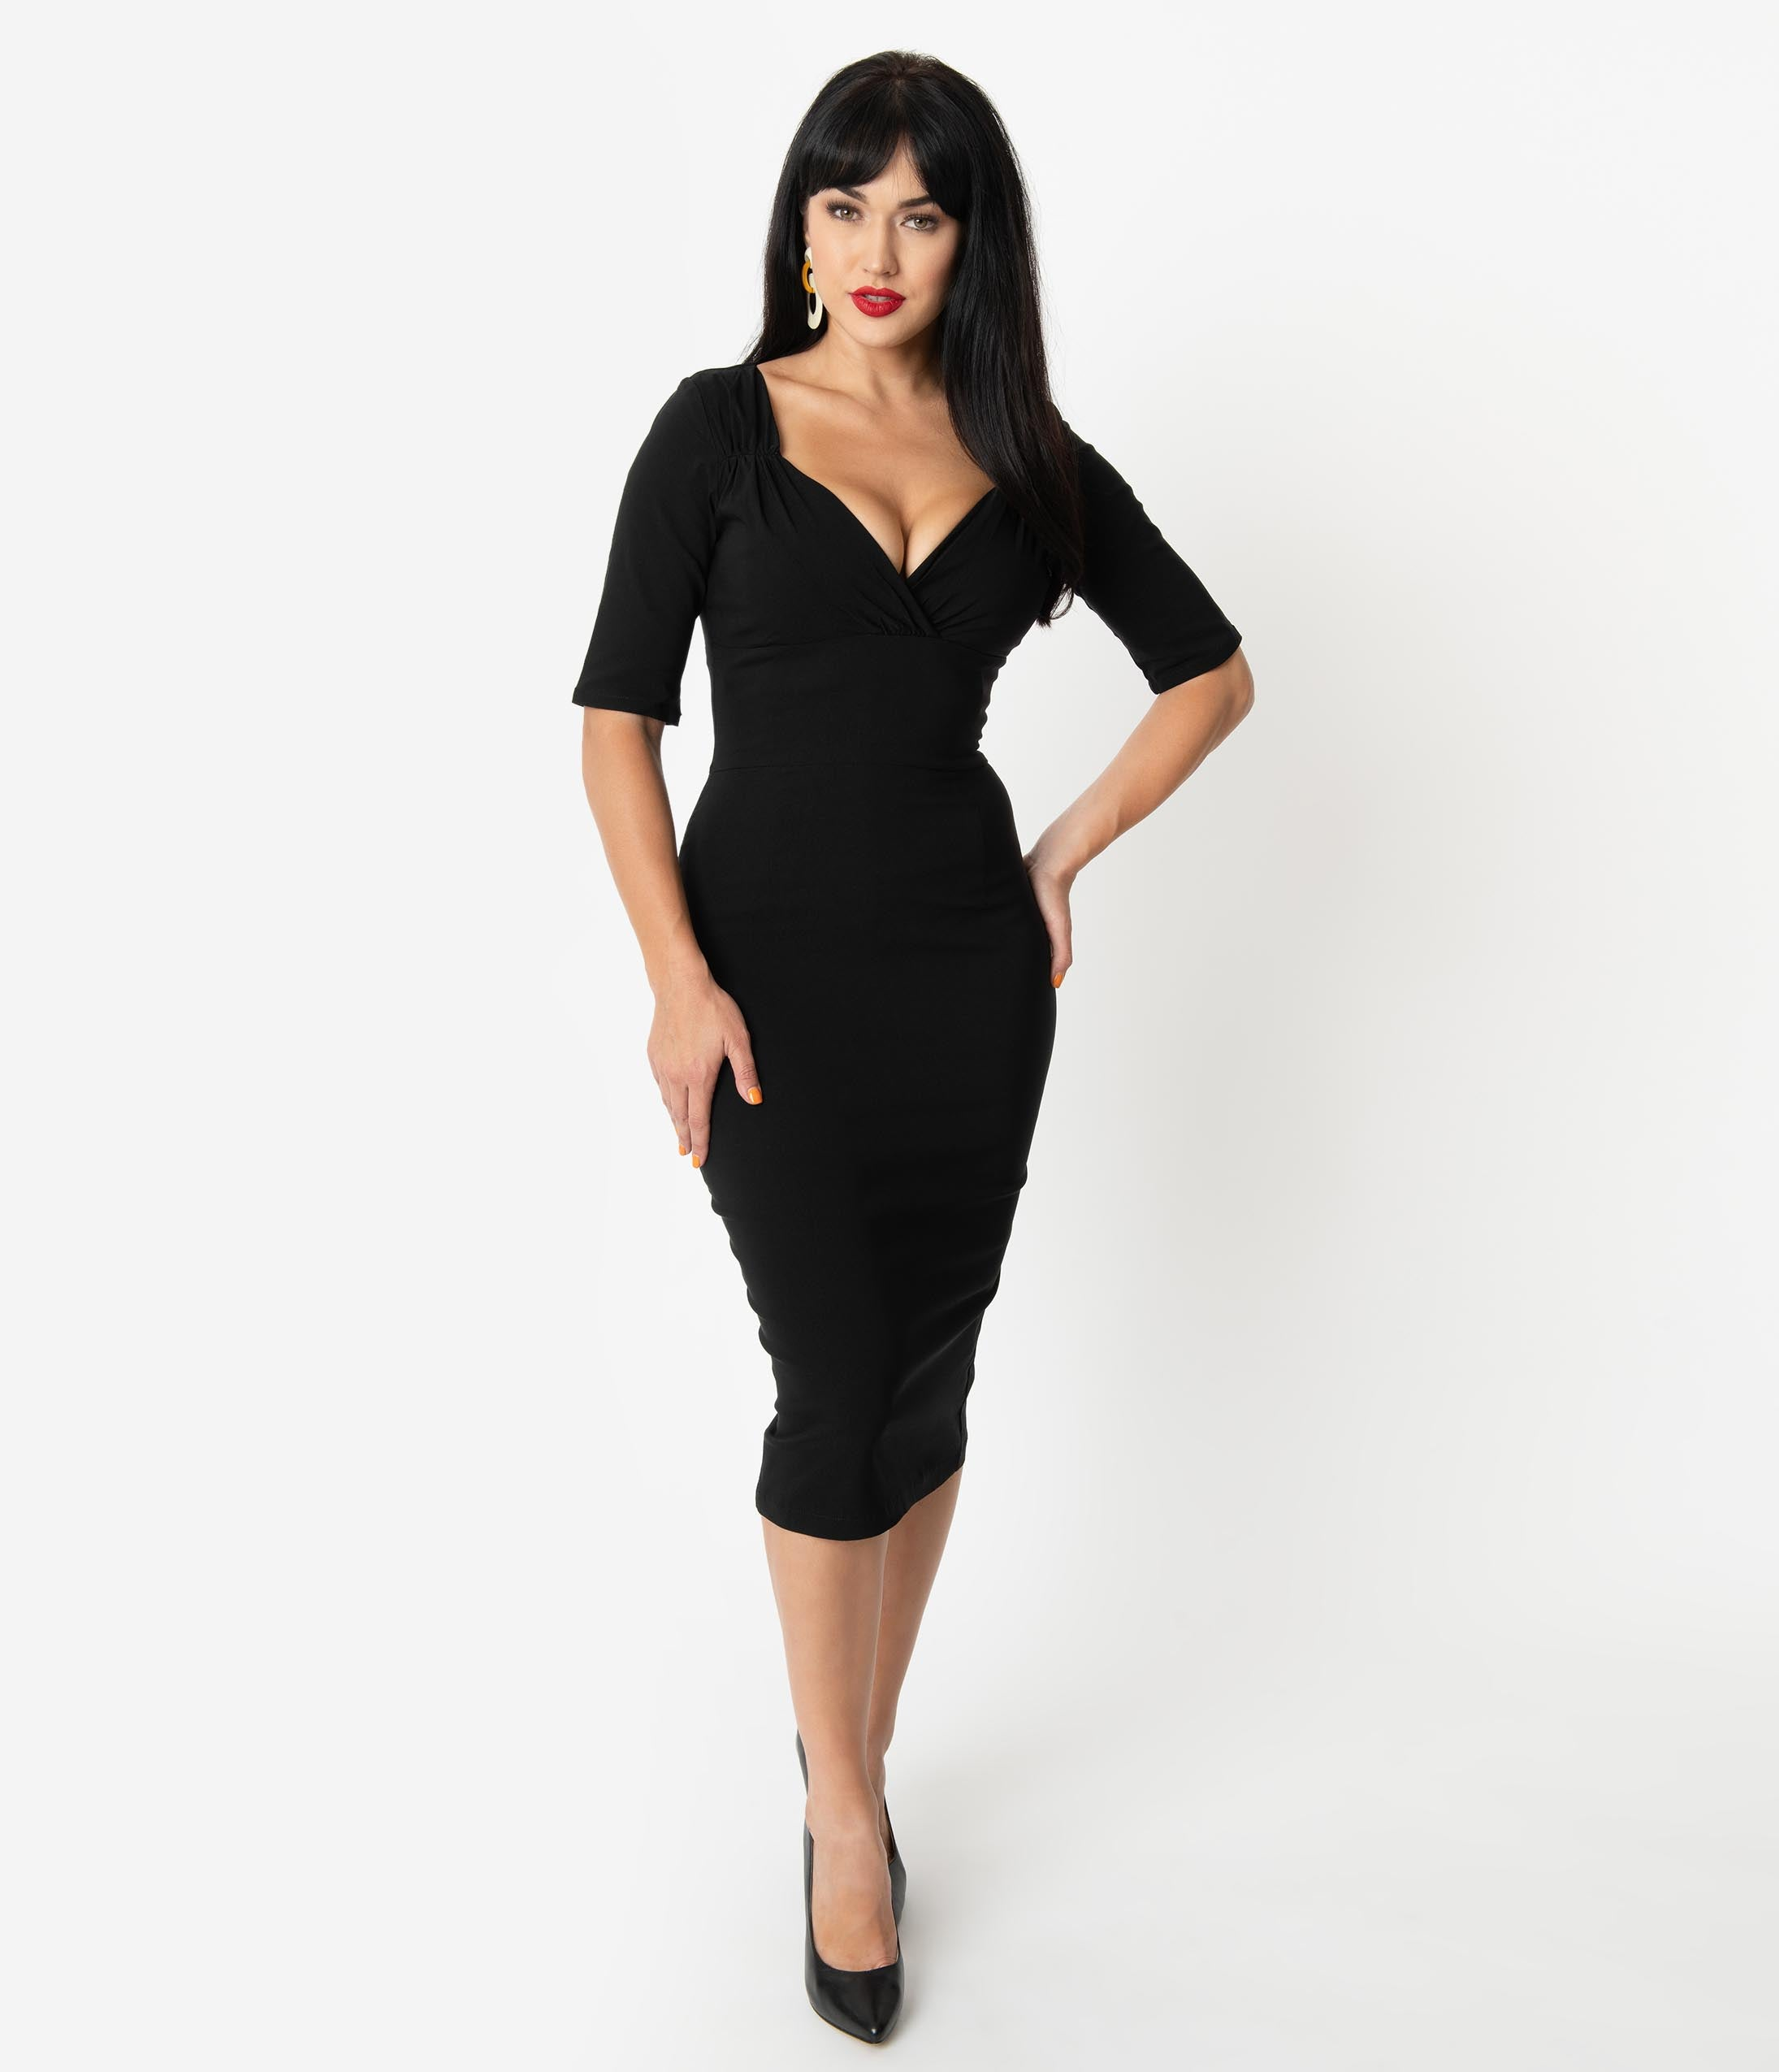 Rockabilly Dresses | Rockabilly Clothing | Viva Las Vegas Collectif 1960S Style Black Bengaline Trixie Pencil Dress $58.00 AT vintagedancer.com